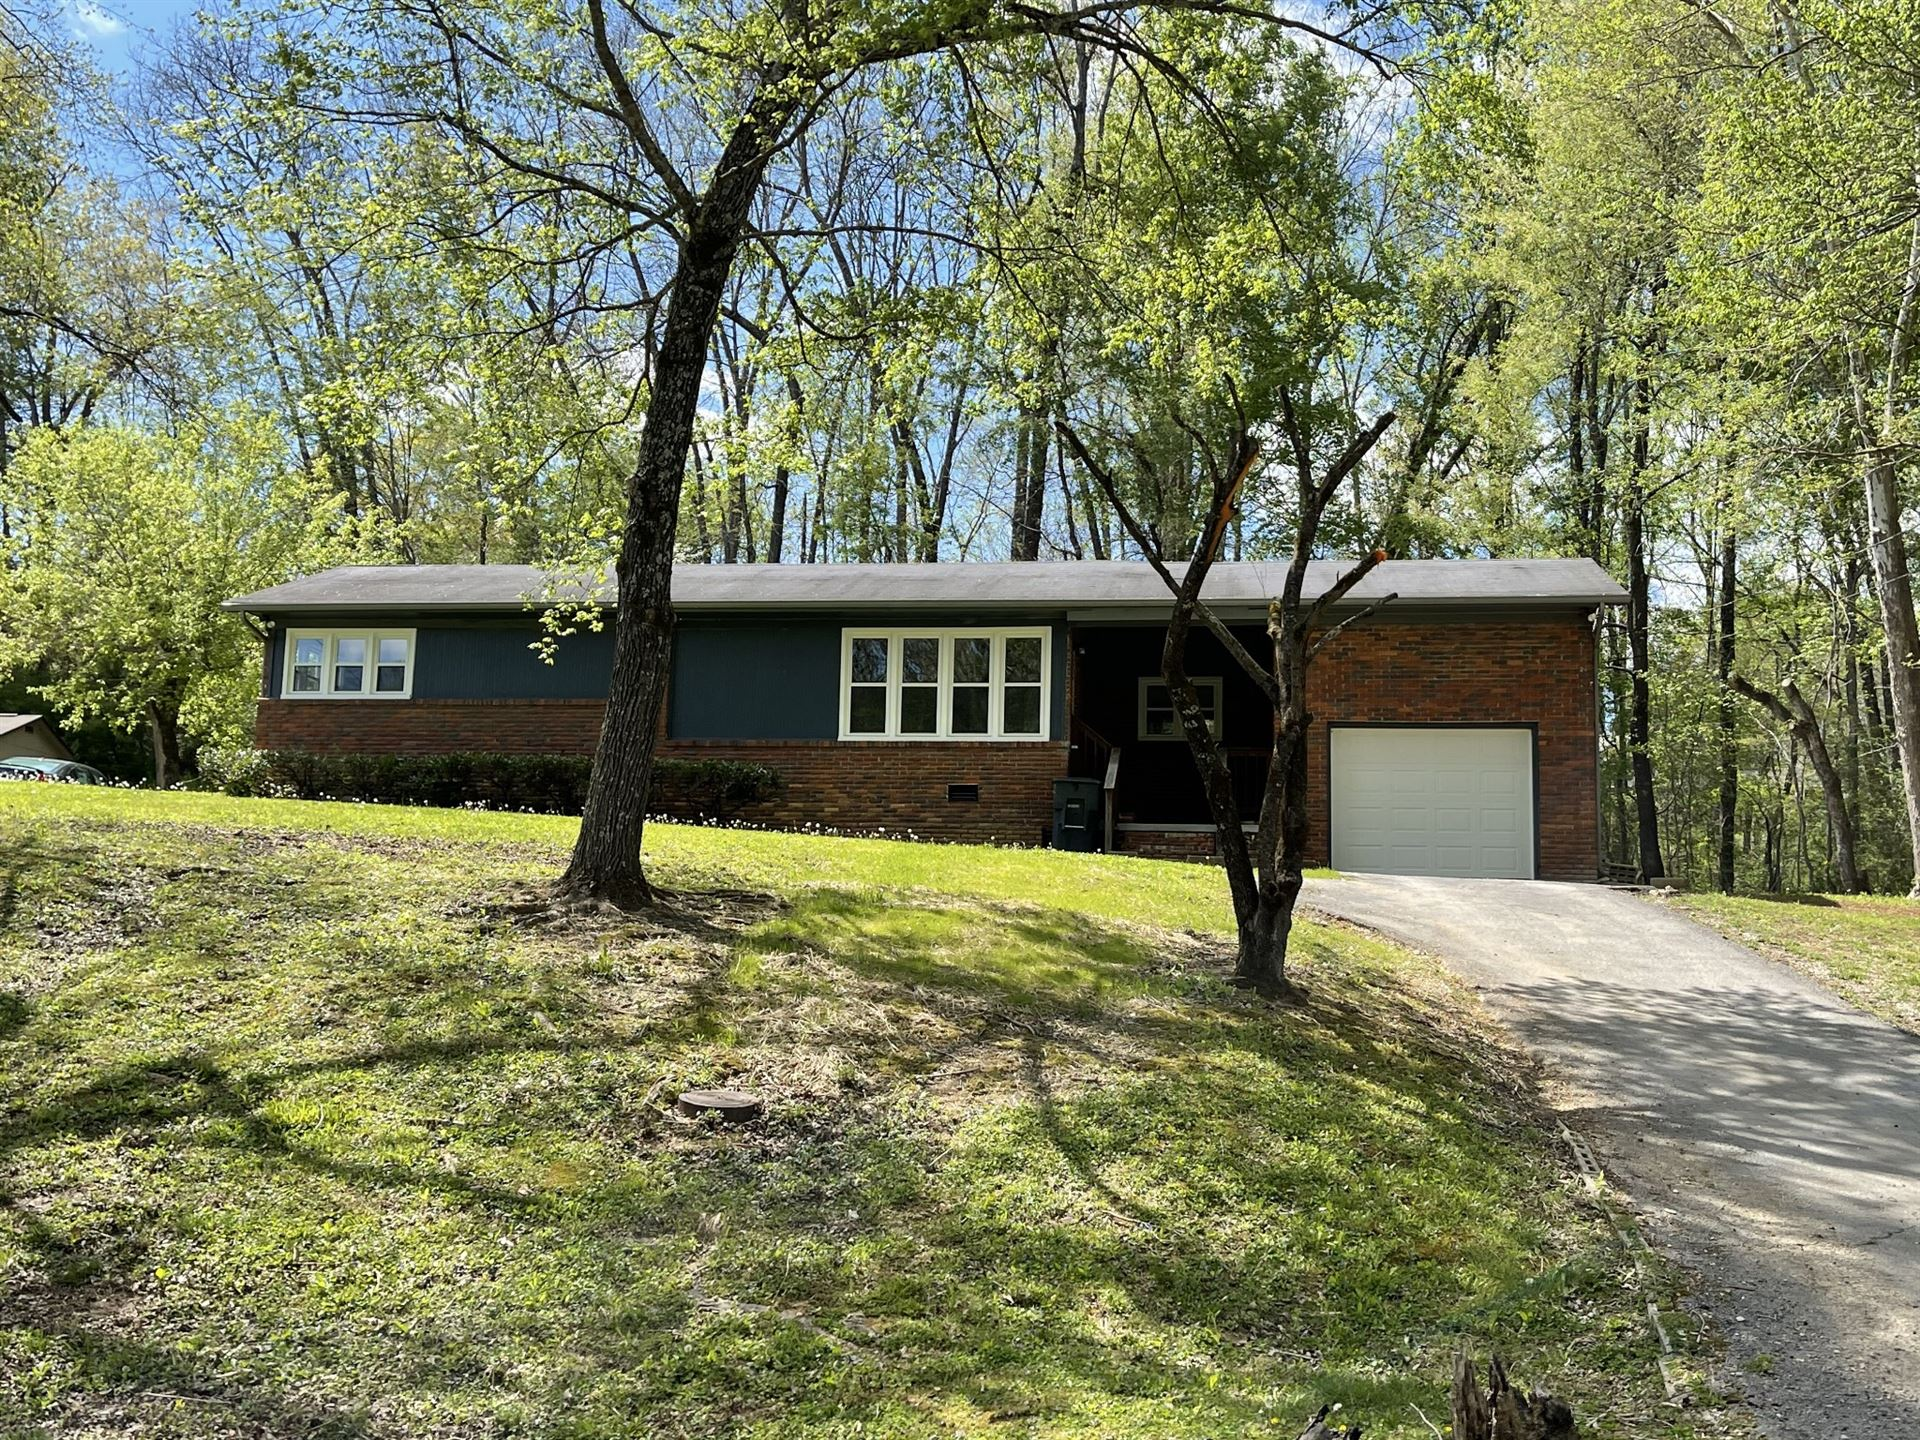 204 Parkview Dr, McMinnville, TN 37110 - MLS#: 2246782